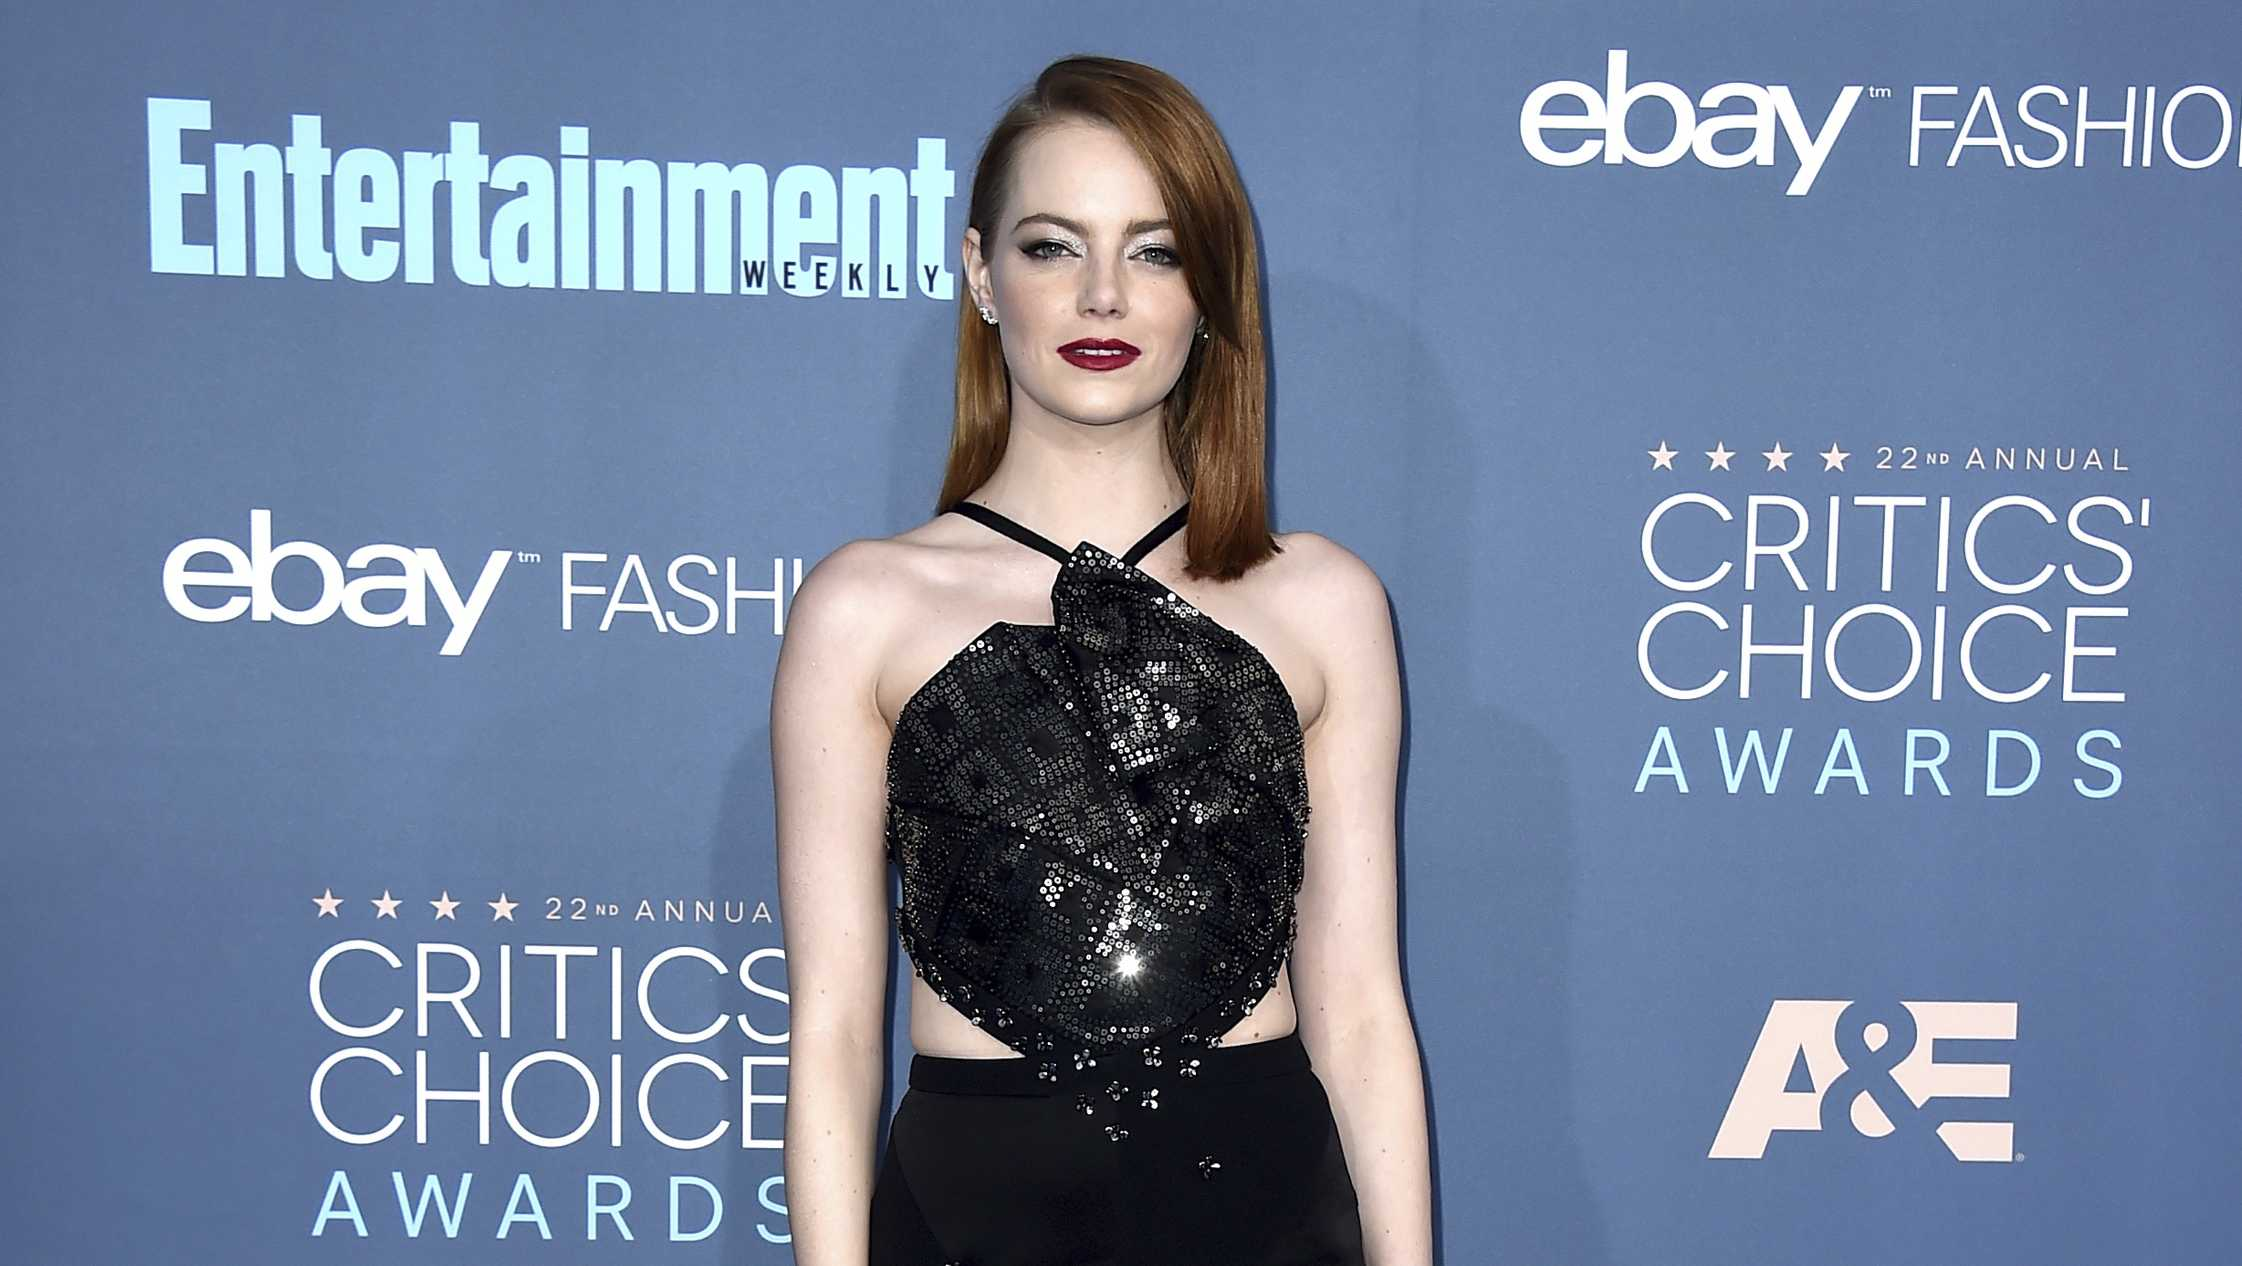 Emma Stone arrives at the 22nd annual Critics' Choice Awards at the Barker Hangar on Sunday, Dec. 11, 2016, in Santa Monica, Calif.